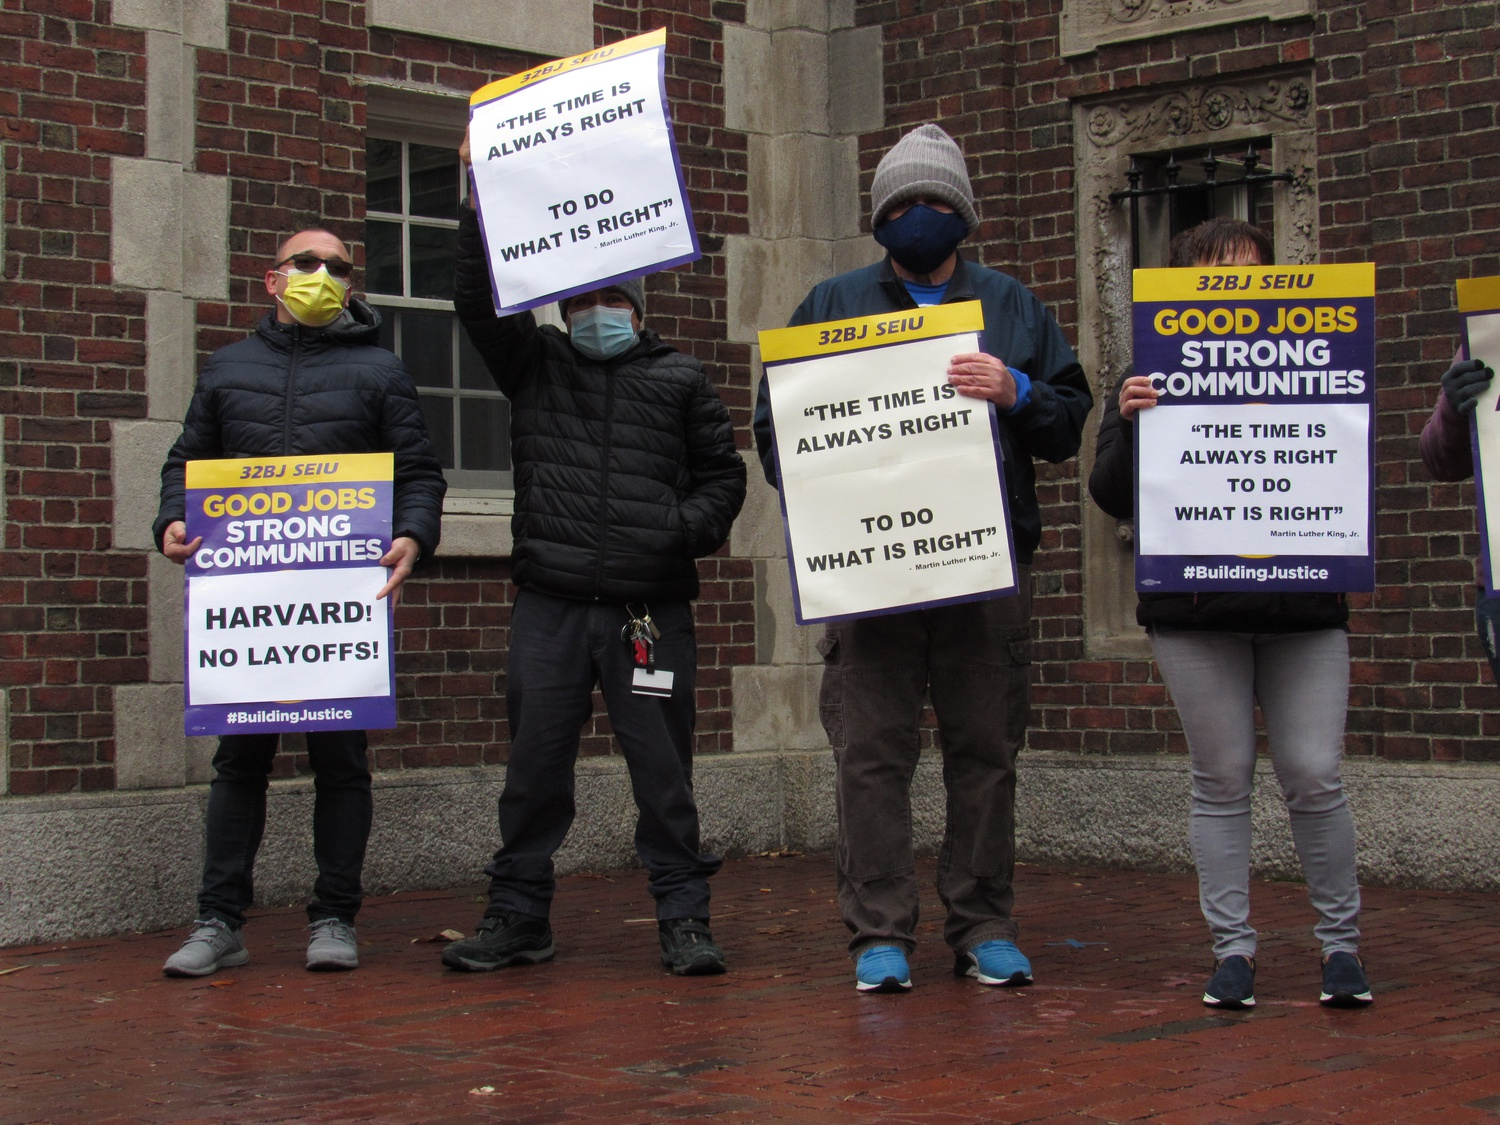 Itamar San Giorgio (left), an appointed administrator who works at the Widener Library, is protesting Harvard's impending layoffs with other 32BJ SEIU members next to Widener Gate.